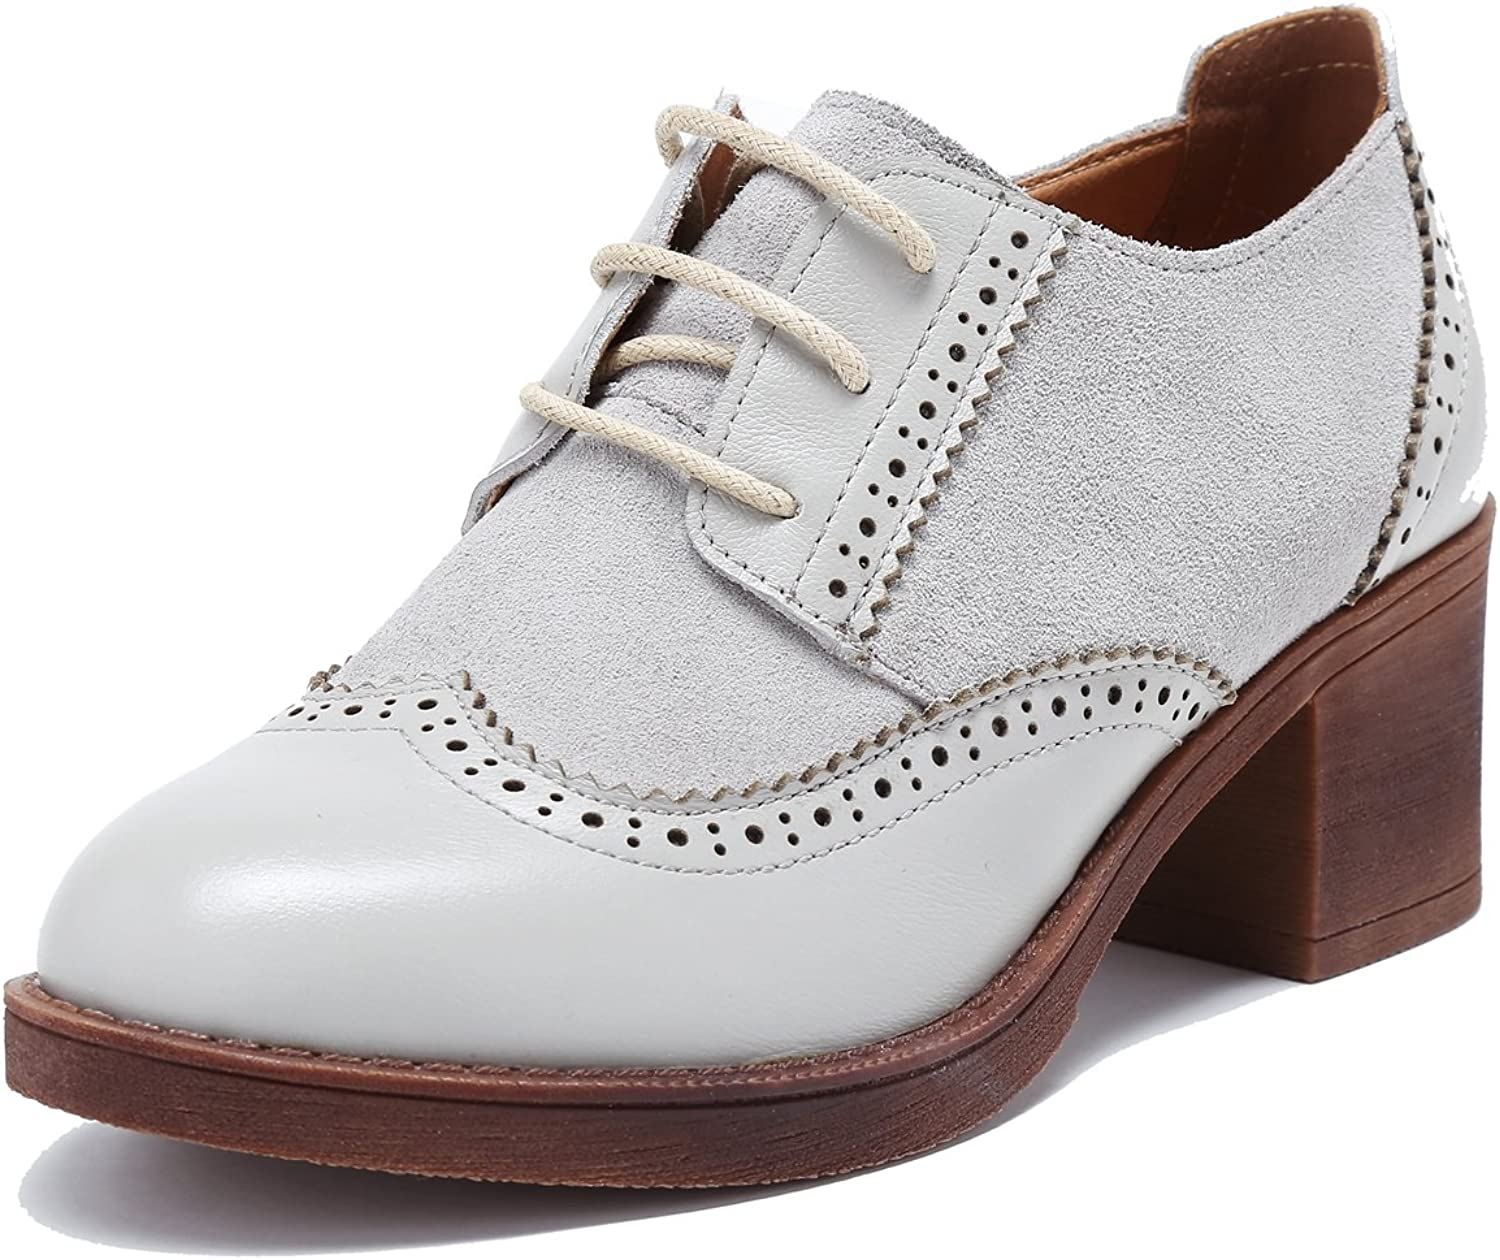 U-lite Womens Suede Genuine Leather Mid-Heel Pump Dress Oxfords, Perforated Lace-up Round-Toe Bred shoes